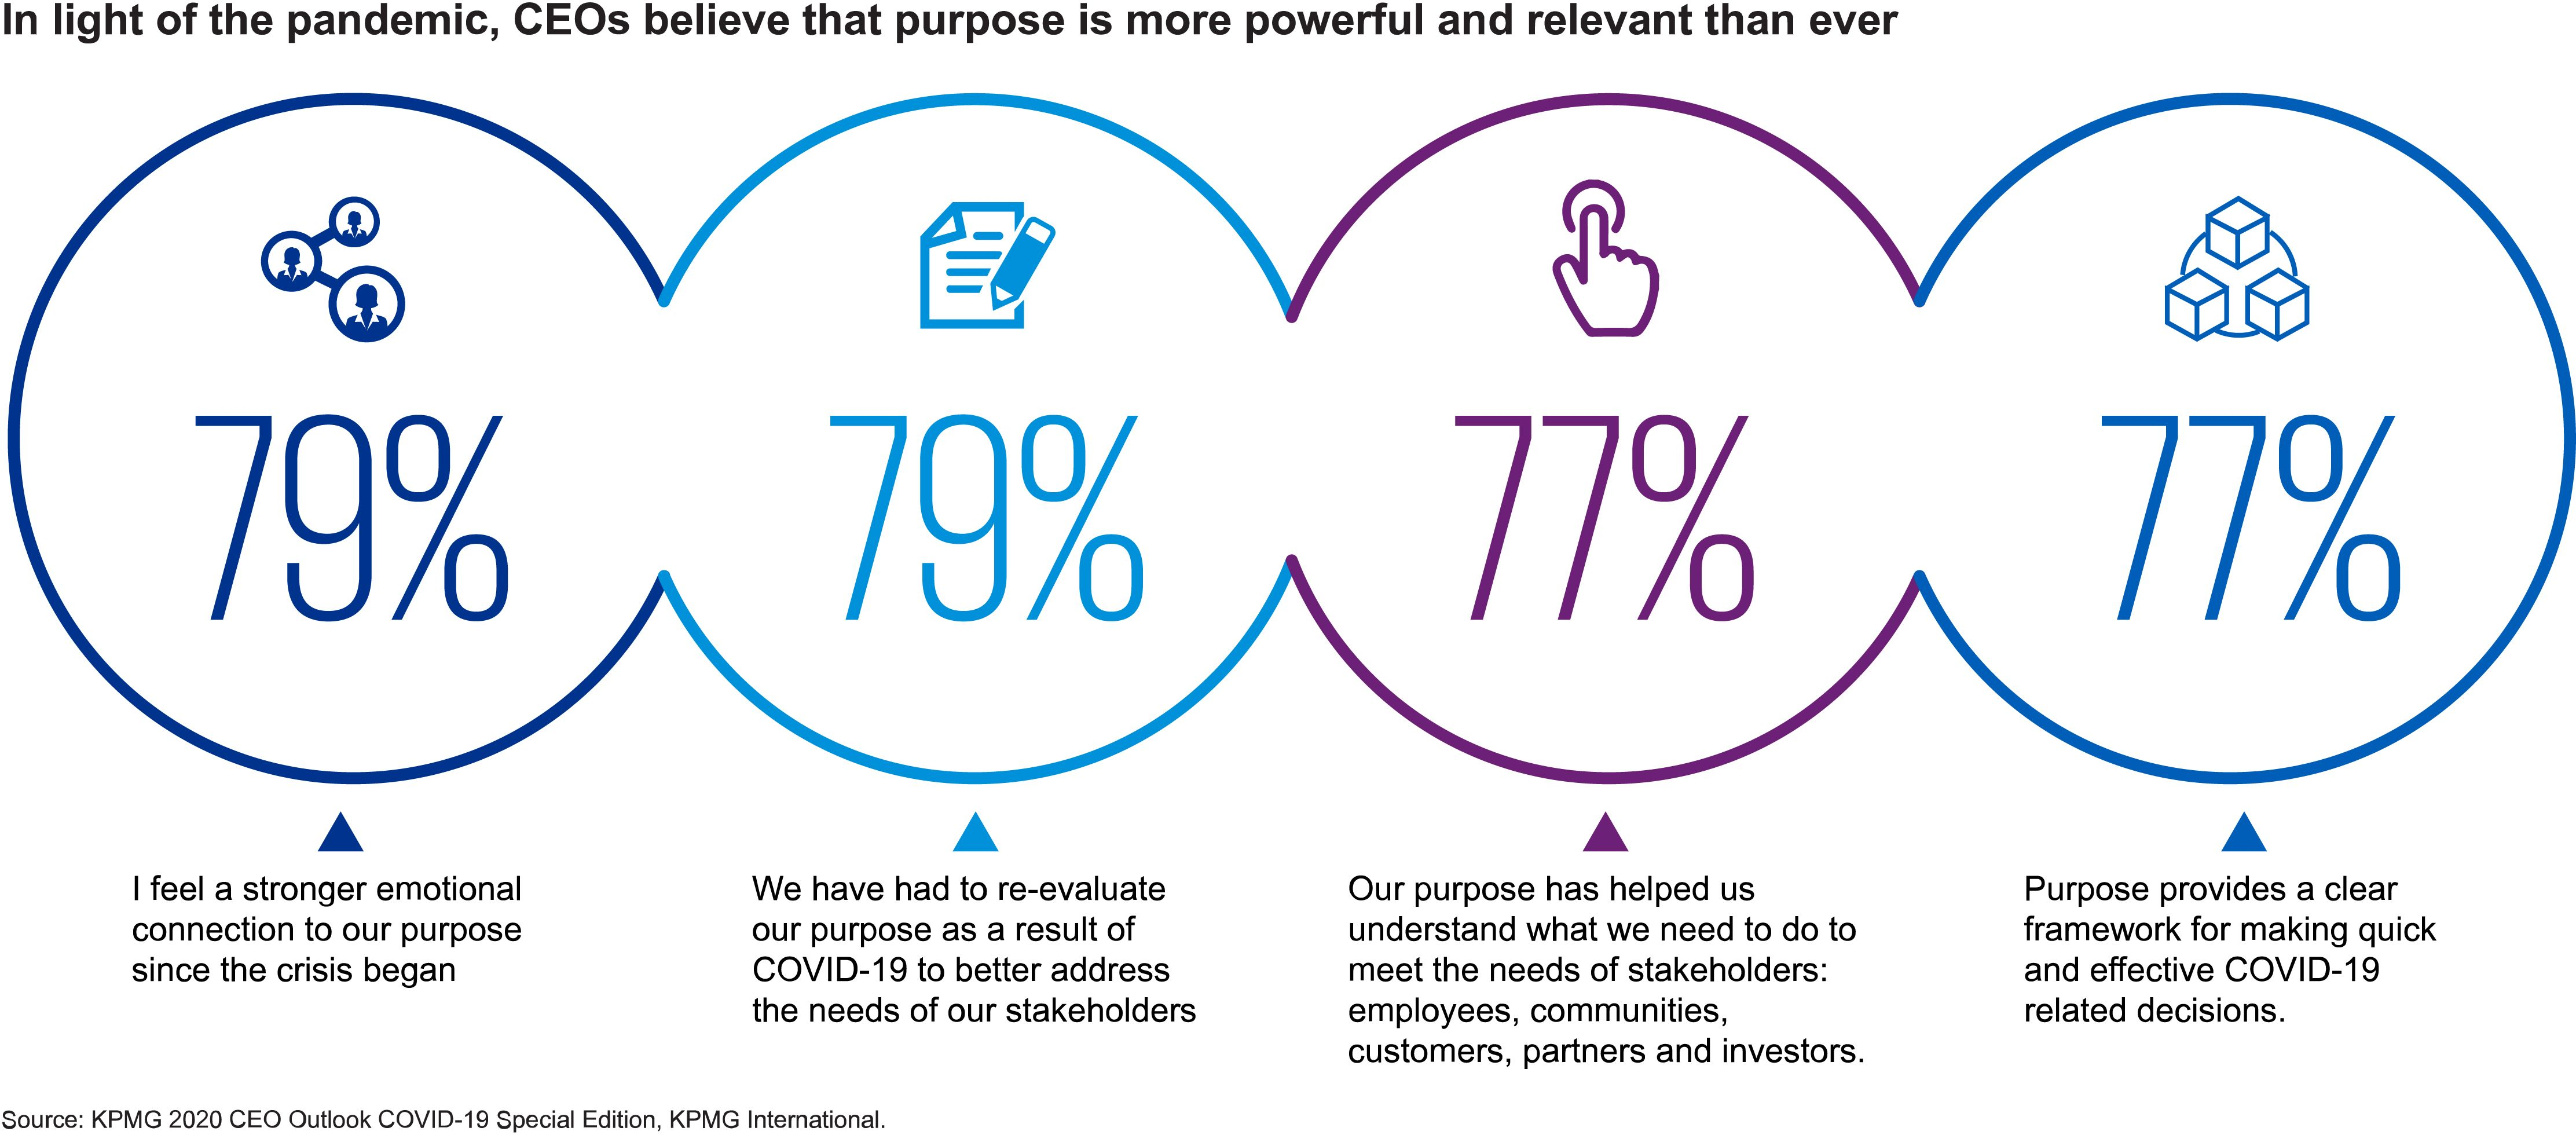 KPMG 2020 CEO Outlook